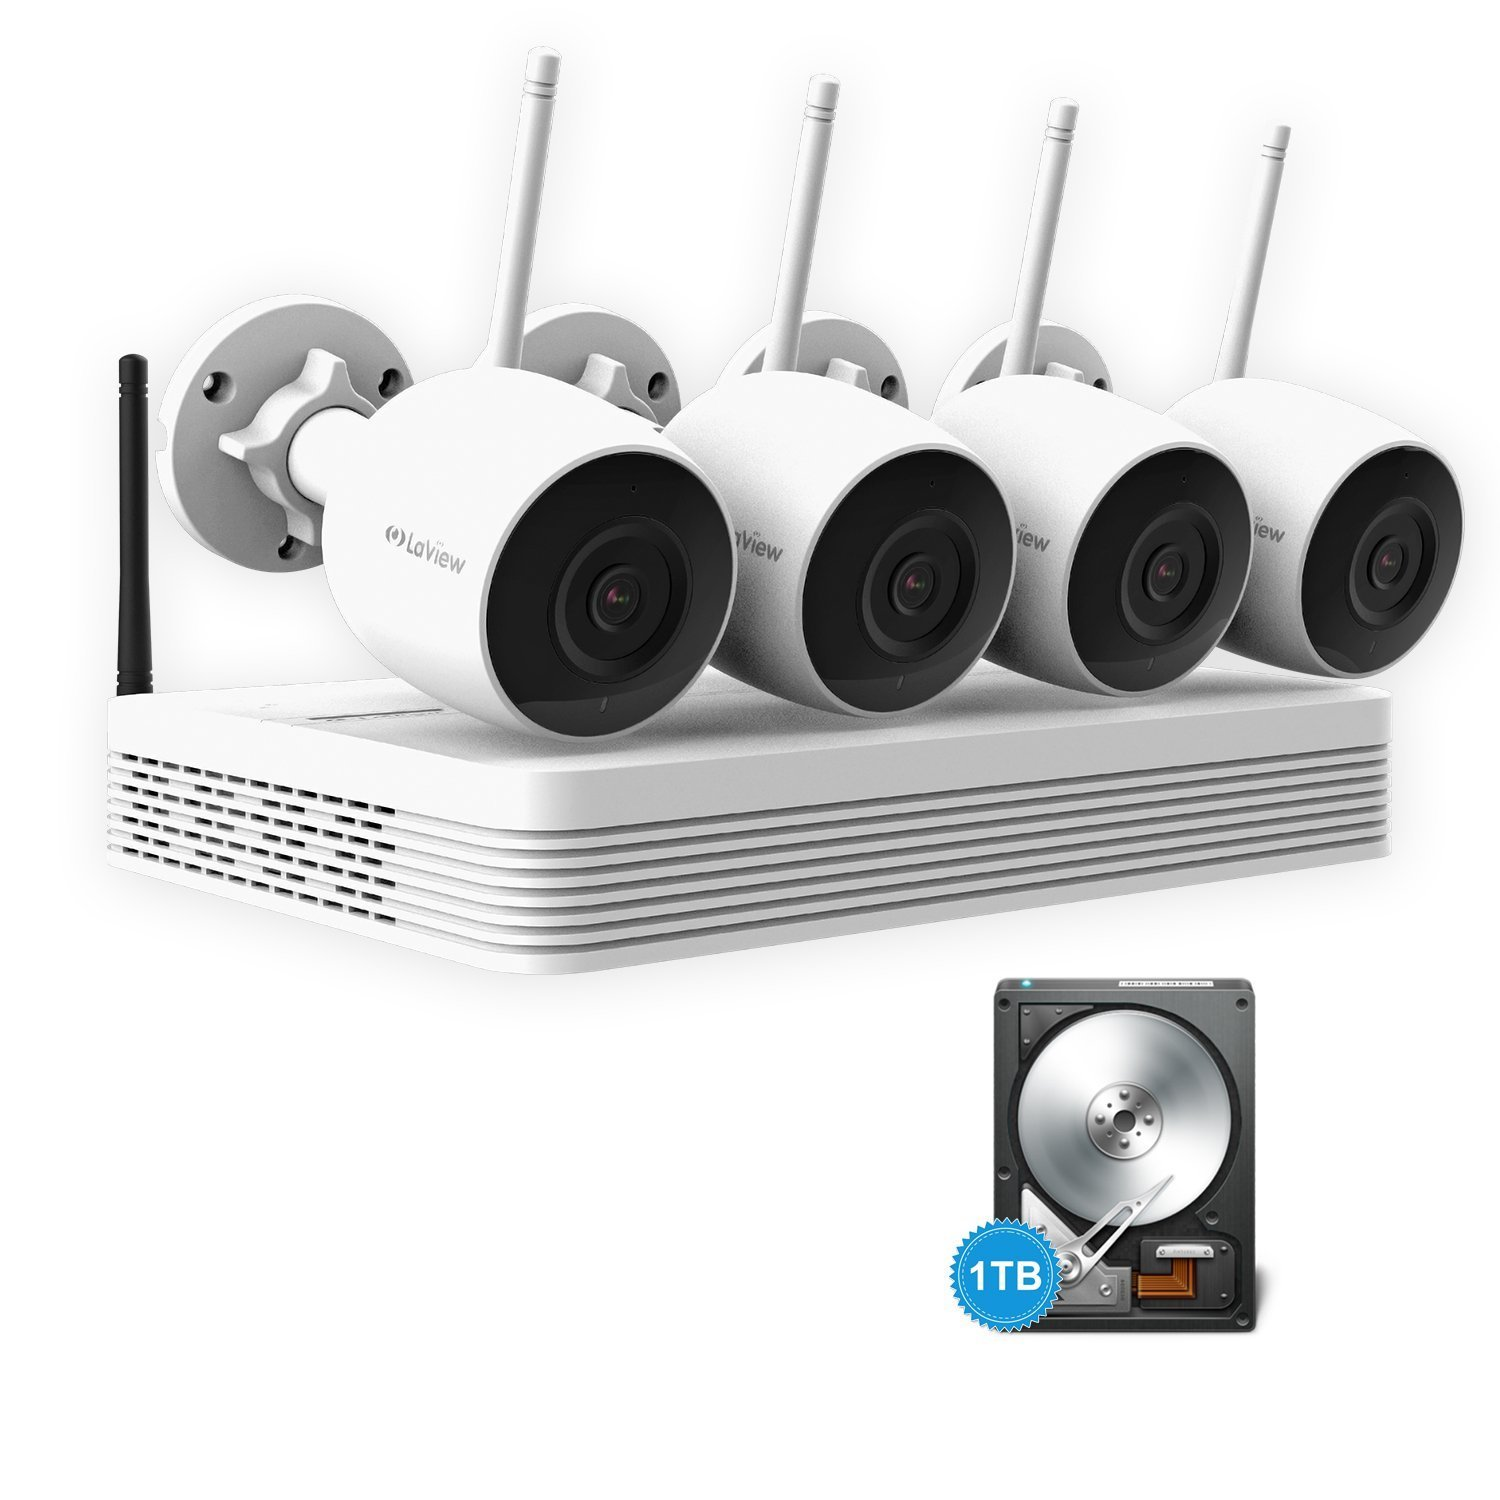 LaView 4CH Wireless Security Cameras System 1080p H.265 NVR Video Surveillance Kits 4pcs HD 1080P Indoor Outdoor WiFi Bullet Cameras, 100ft Night Vision, Remote Access, 1TB Hard Drive Pre-installed